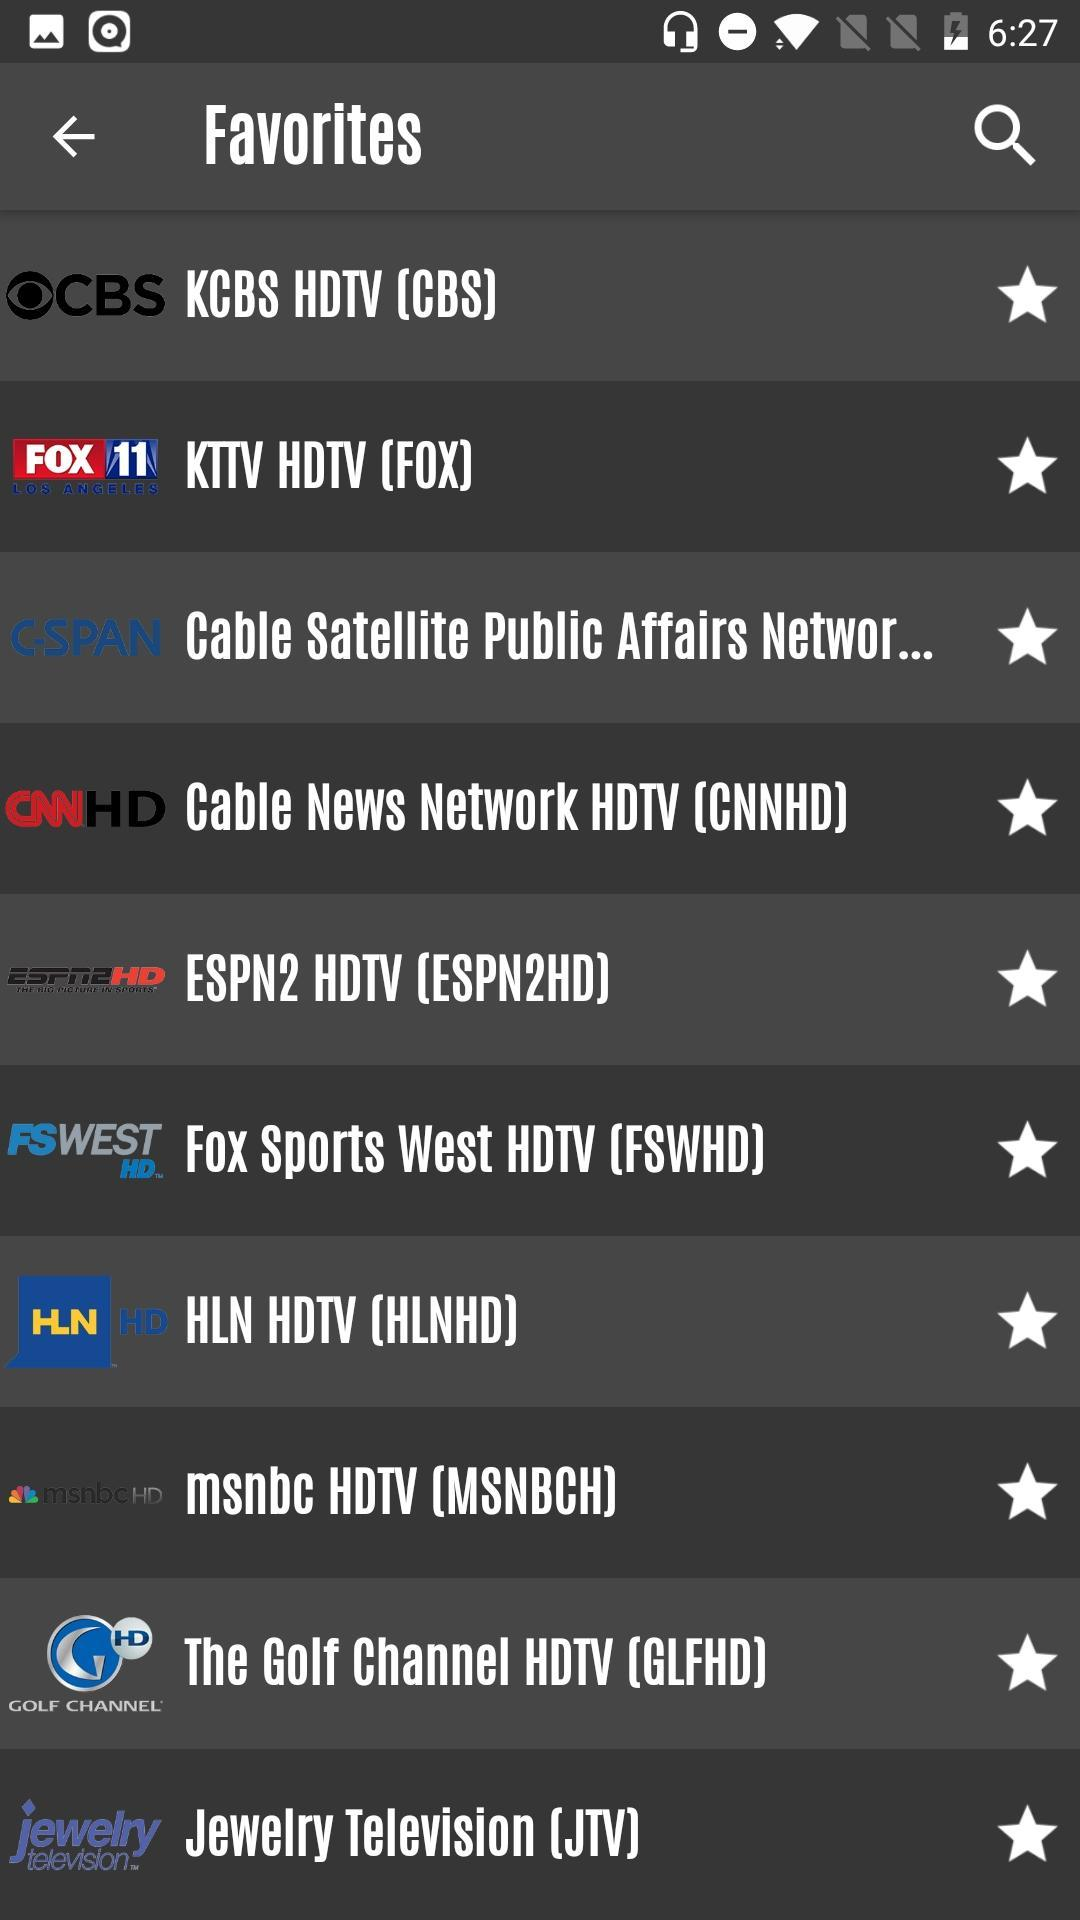 TV USA - Free TV Guide for Android - APK Download